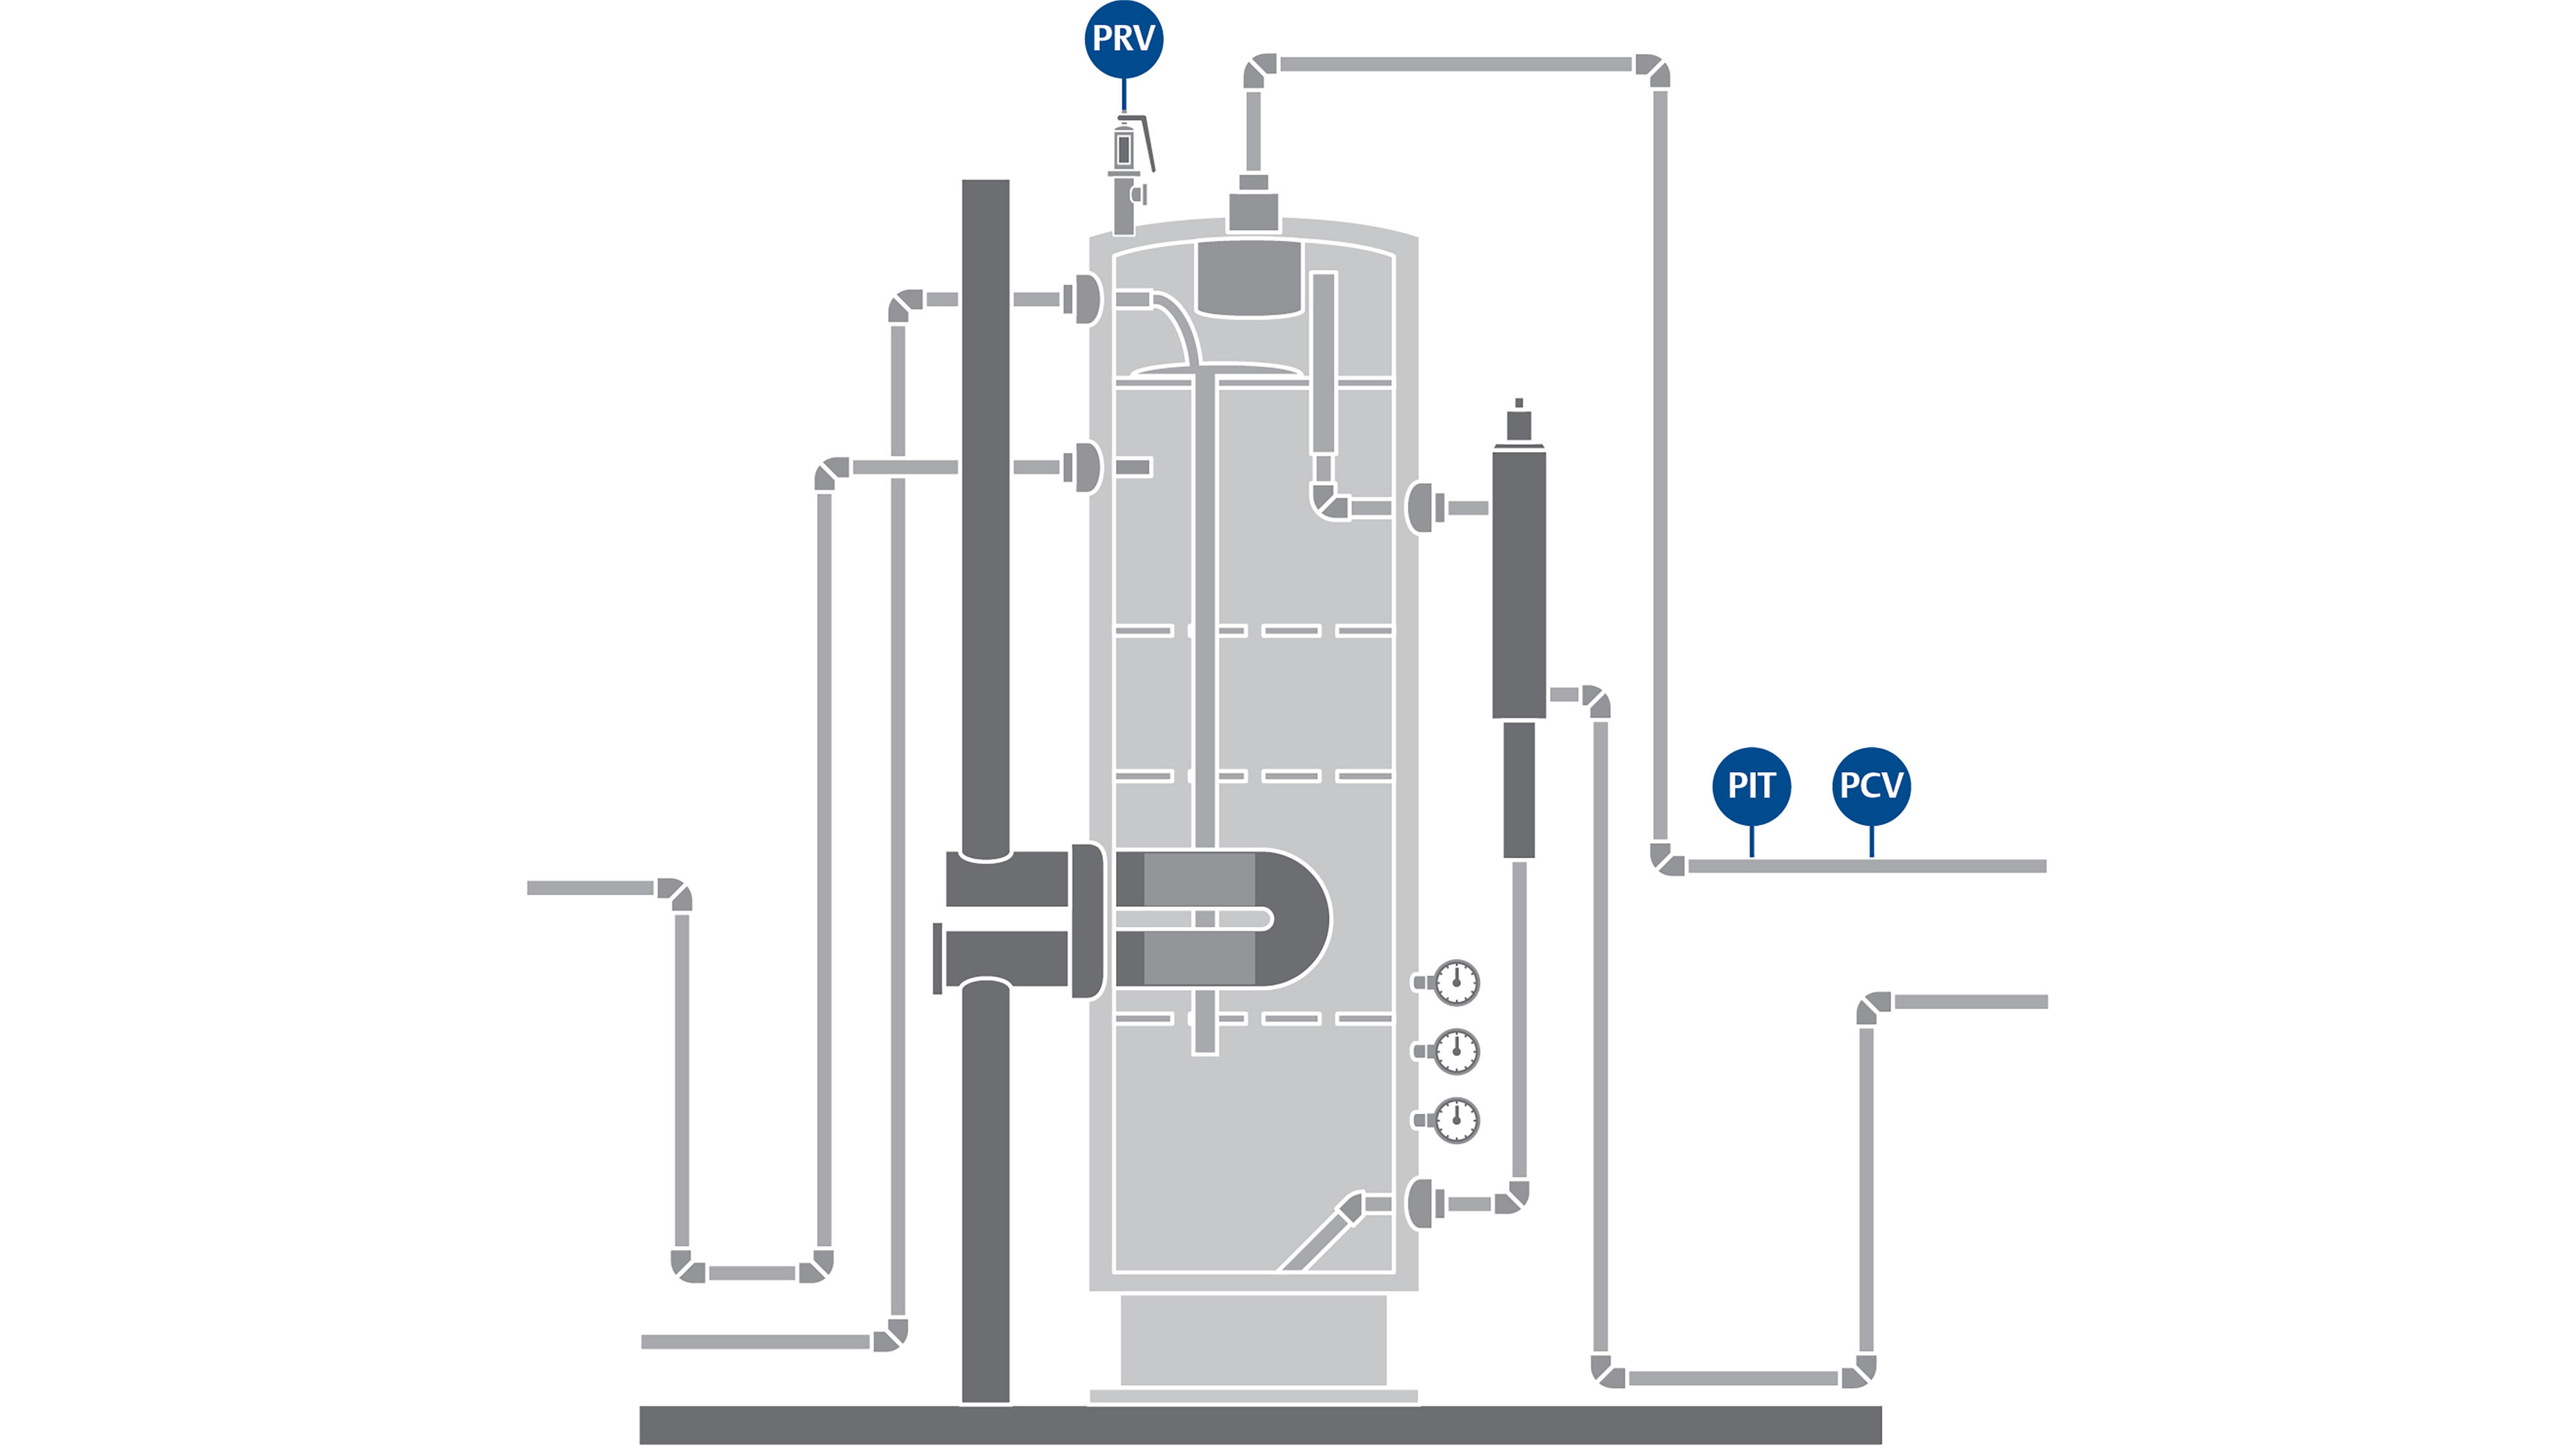 Heater Treater Emerson Gb Gas Well Schematic Over Wider Flow Range For Improved Separation Efficiency Prevent Entrained In Oil And Avoid Increased Backpressure Loss Of Intermediates